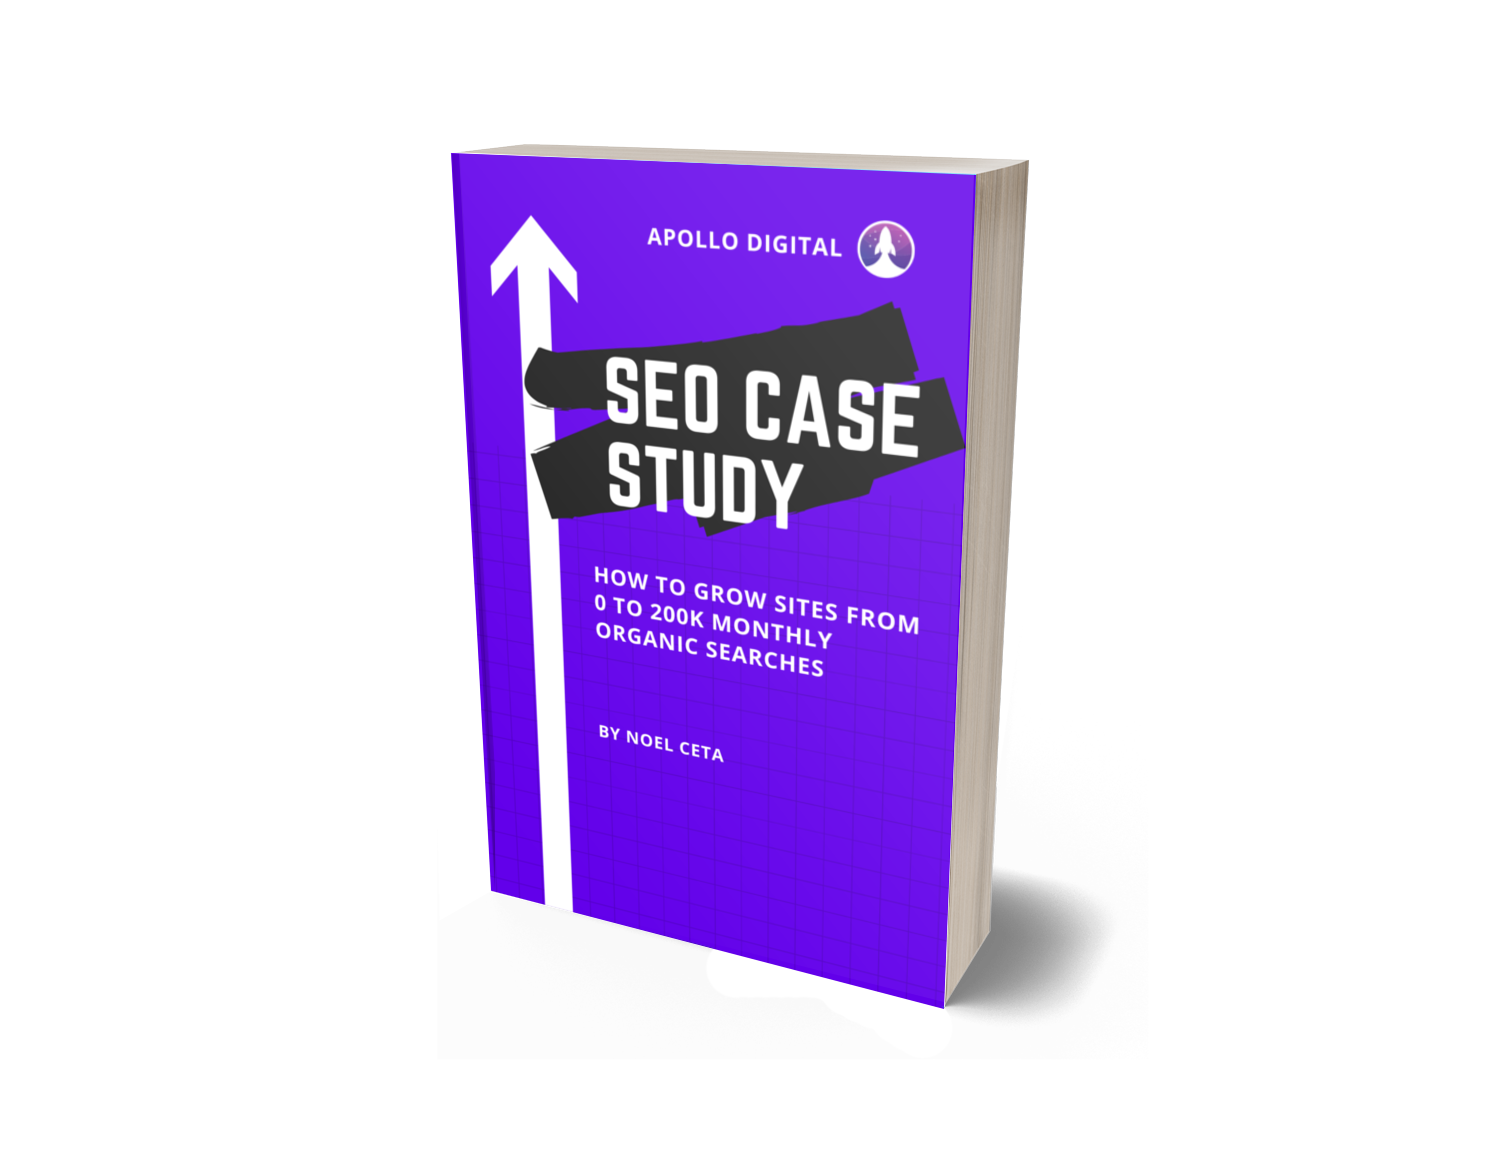 SEO Case Study PDF by Apollo Digital